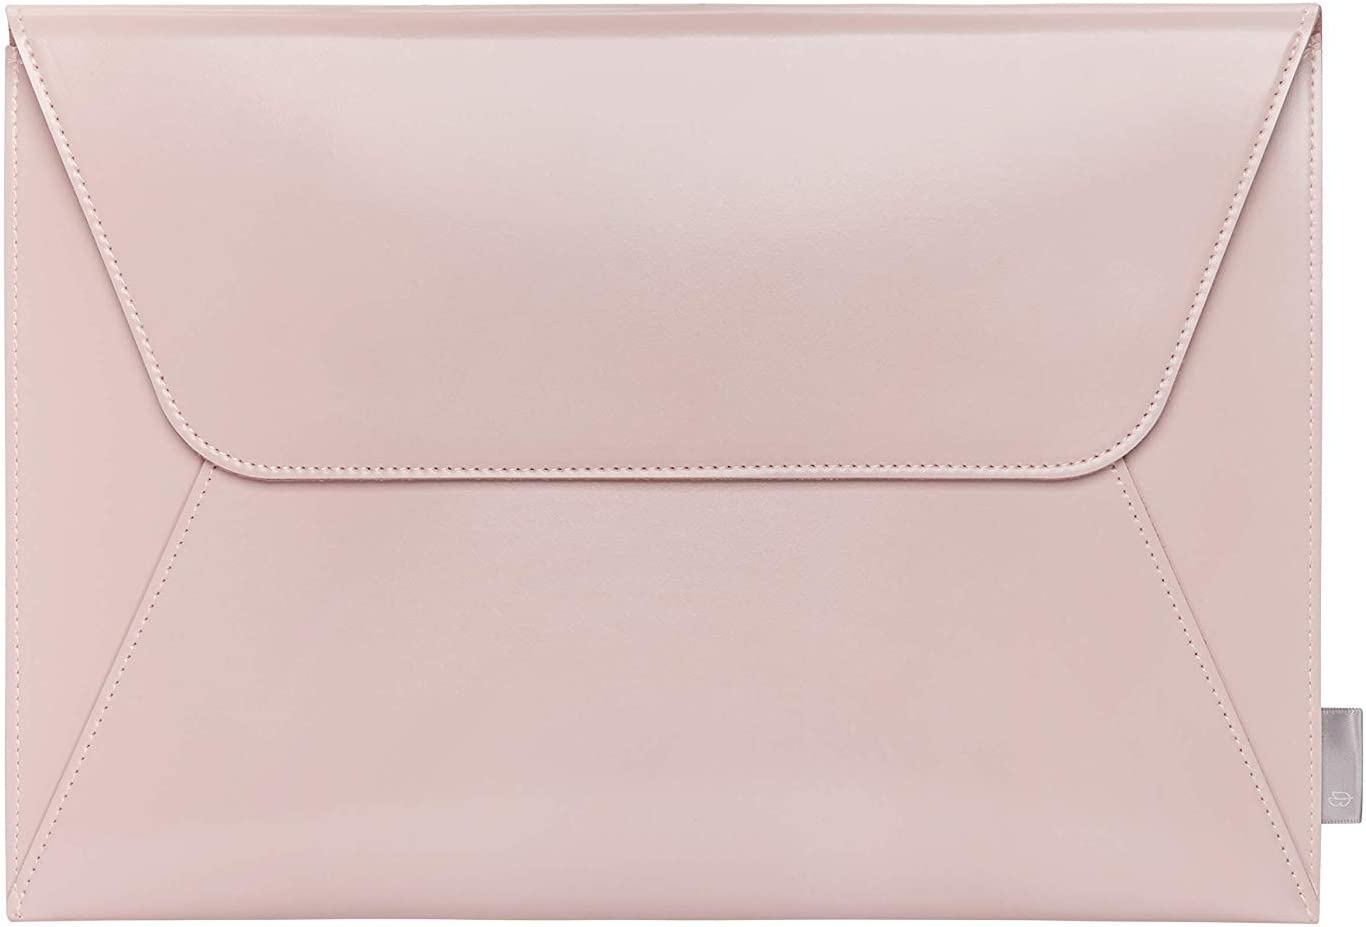 Comfyable Leather Laptop Sleeve 13-13.3 Inch for MacBook Pro & MacBook Air - PVC Leather Envelope Sleeve Computer Case for Mac, Pink